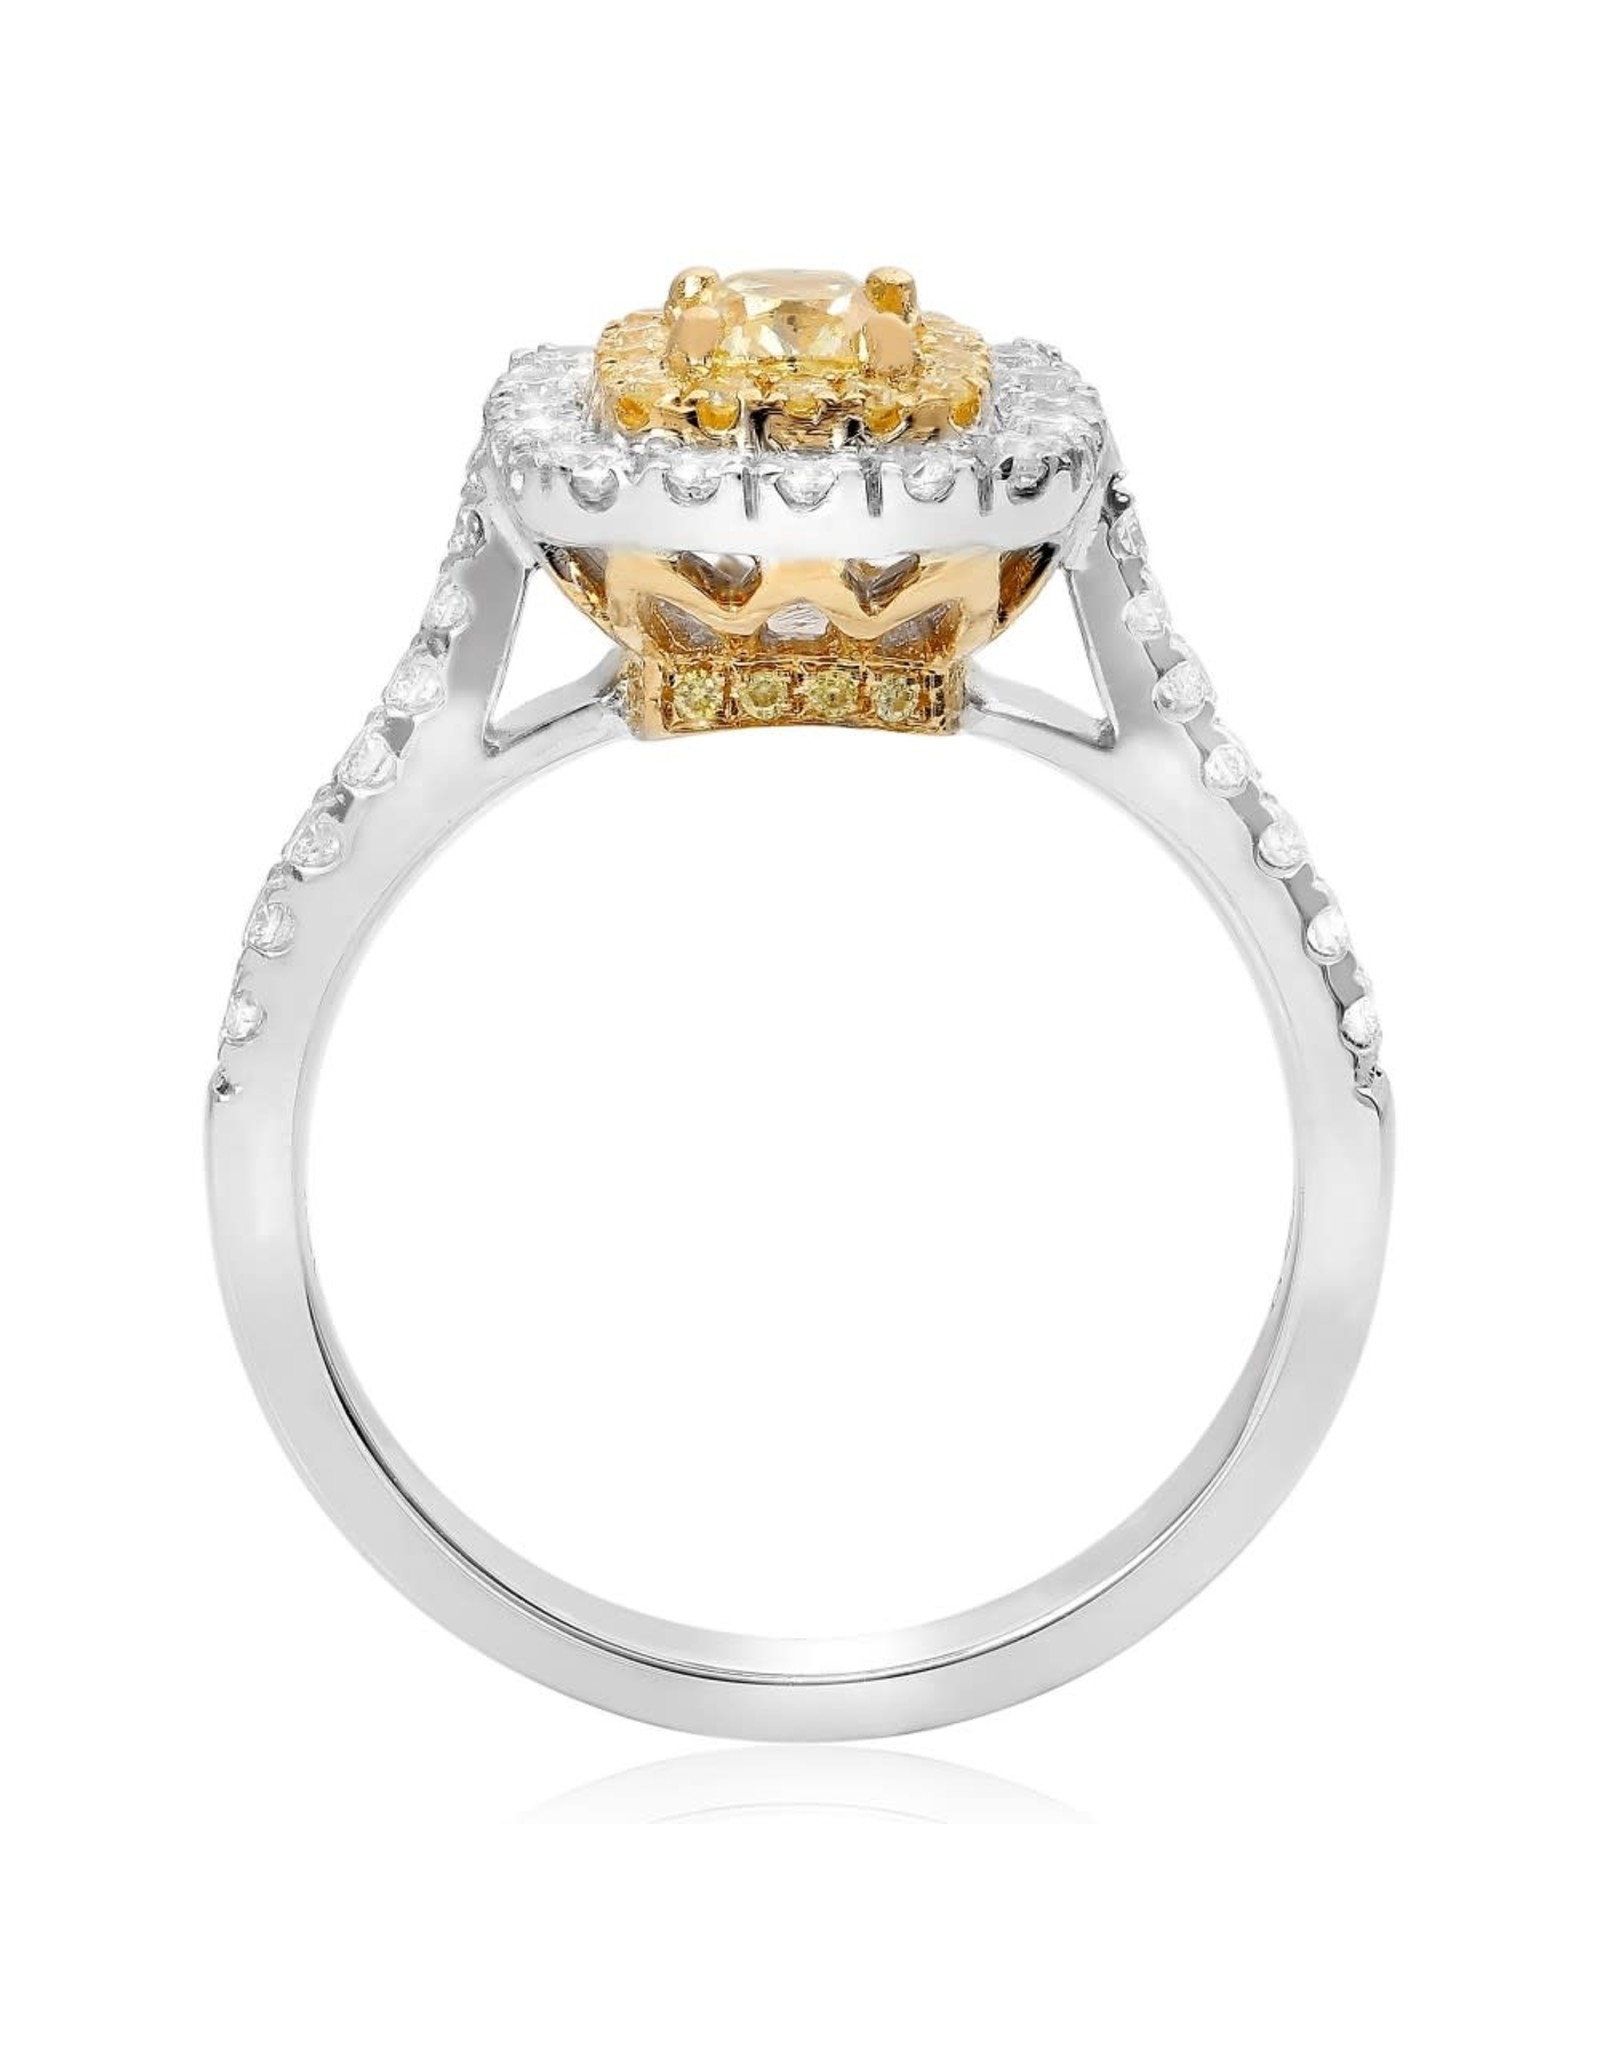 18K White Gold Fancy Yellow Diamond Engagement Ring, YCD: 0.47ct, RD: 0.61ct